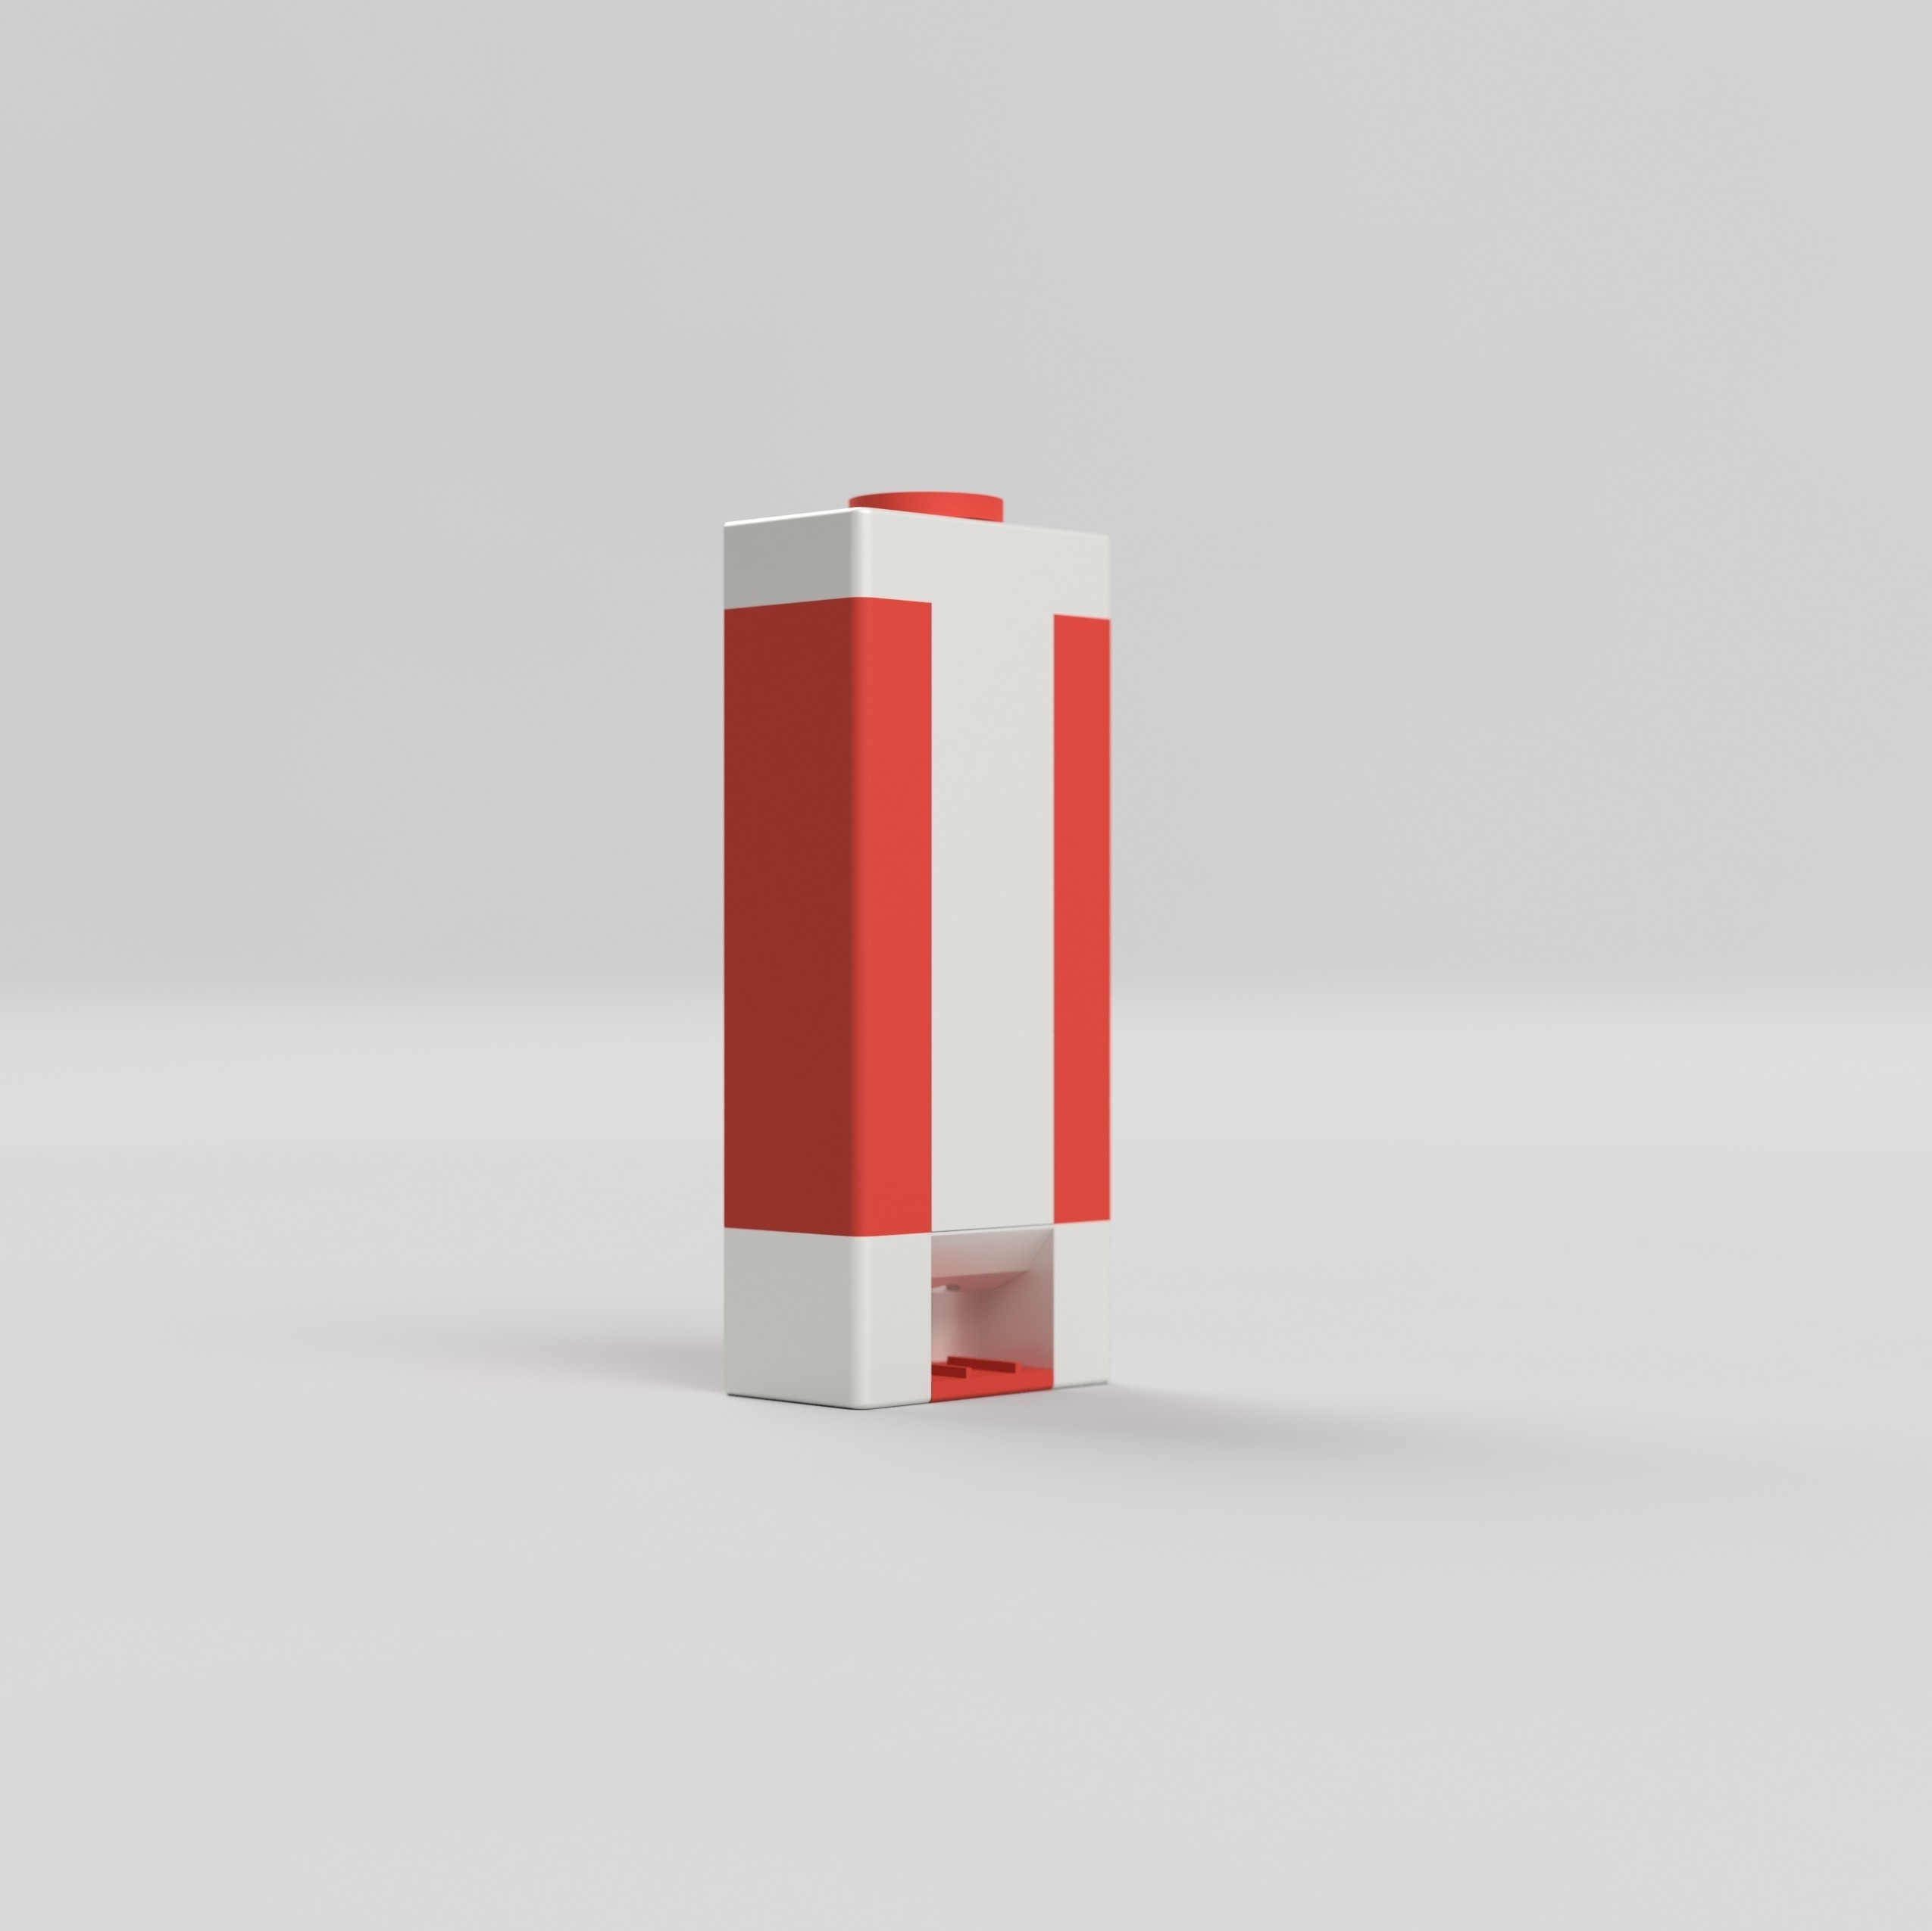 Assy_2017-Nov-28_06-34-42PM-000_CustomizedView13325155747_png.jpg Download free STL file Toothpaste Dispenser • 3D print model, Anthony_SA